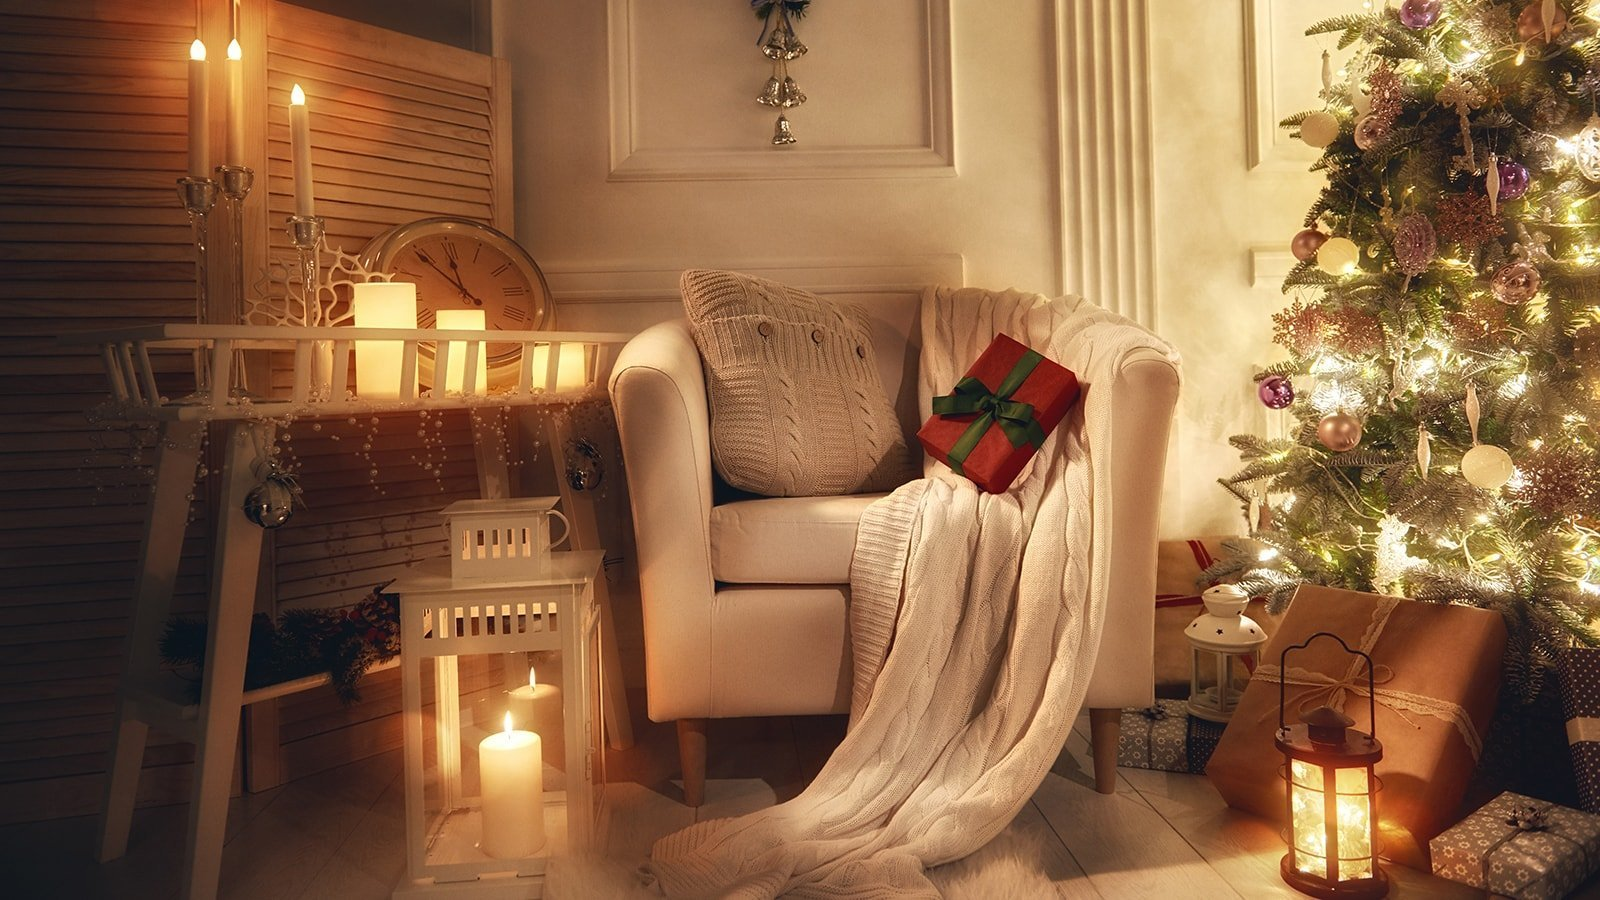 Gorgeous Warm And Inviting Christmas Decor For Your